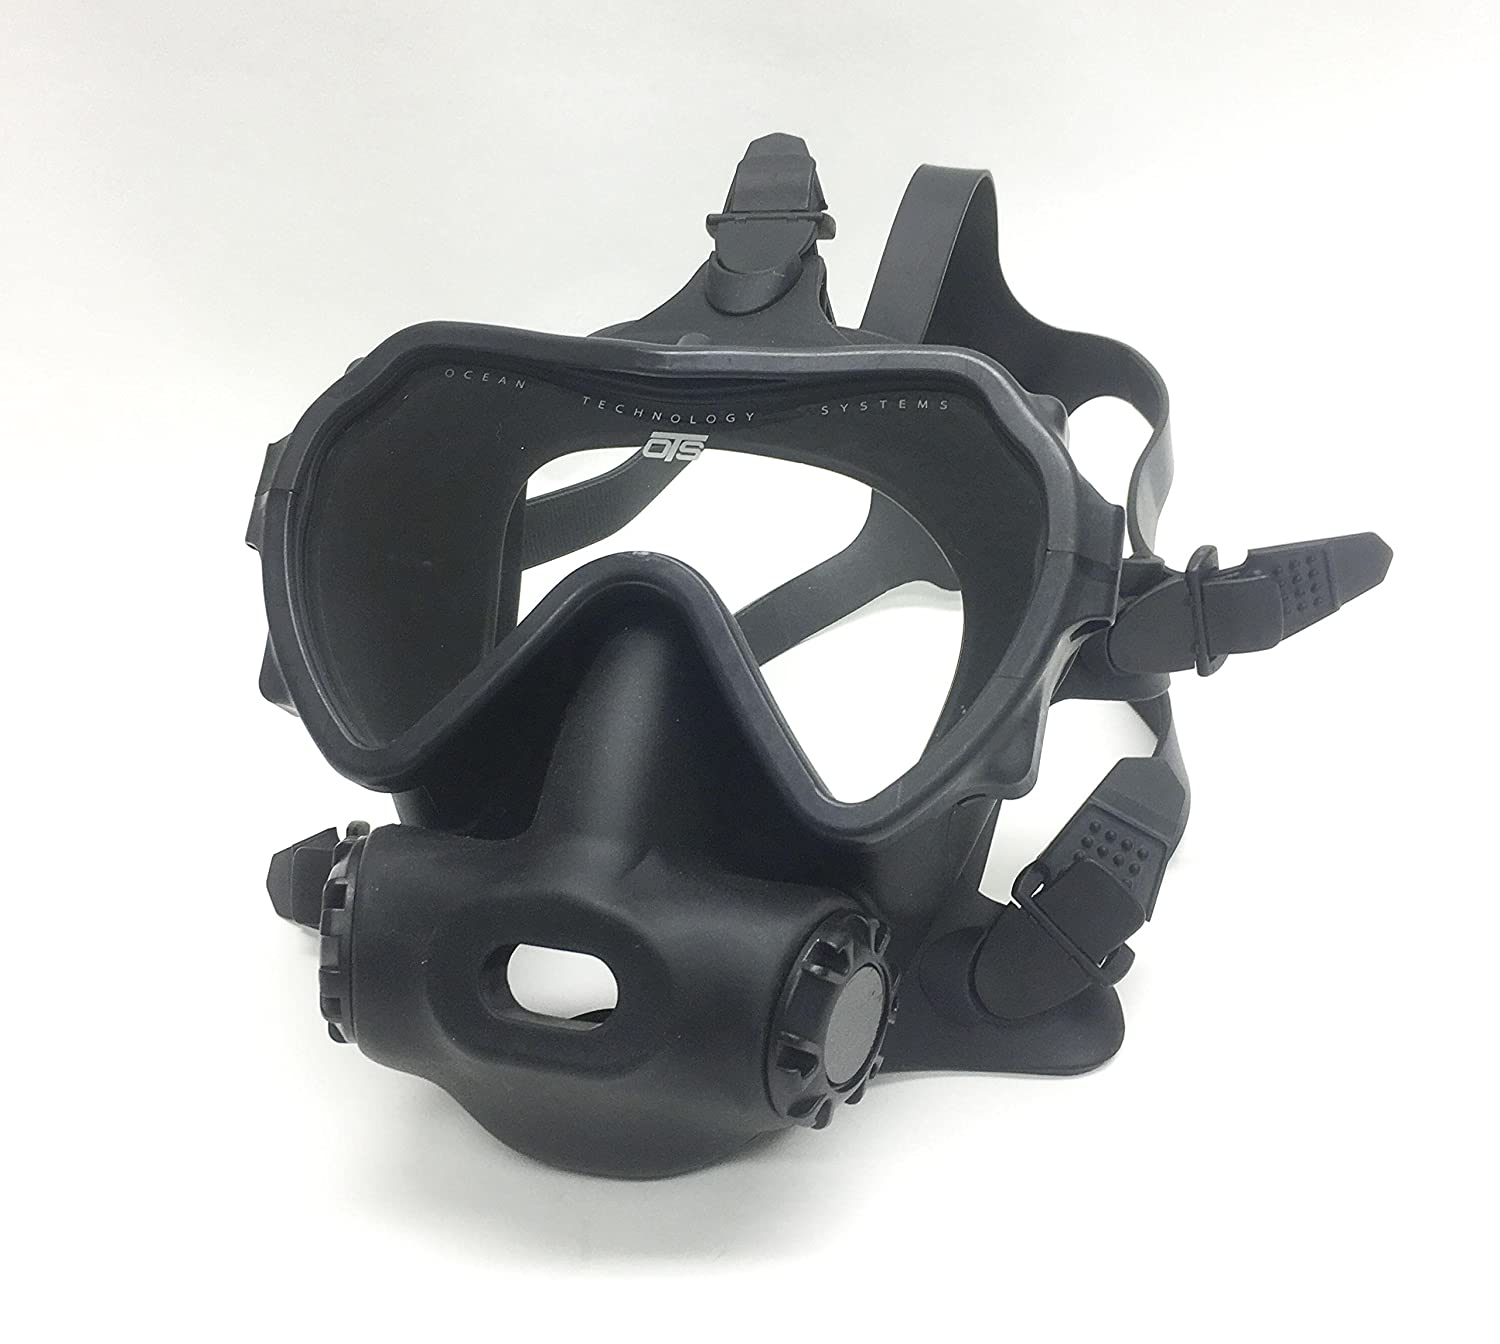 Amazon.com : OTS Spectrum Full Face Mask, Black Clear Lens : Sports & Outdoors